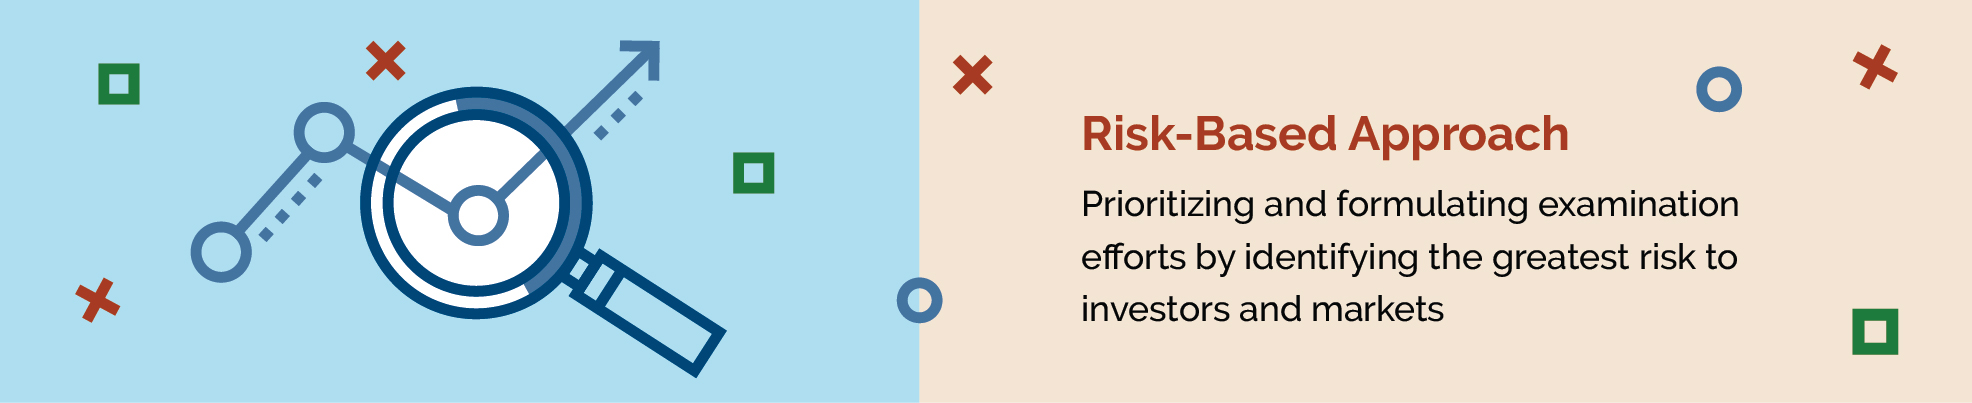 Examination Priorities graphic that says Prioritizing and formulating examination efforts by identifying the greatest risk to investors and markets.